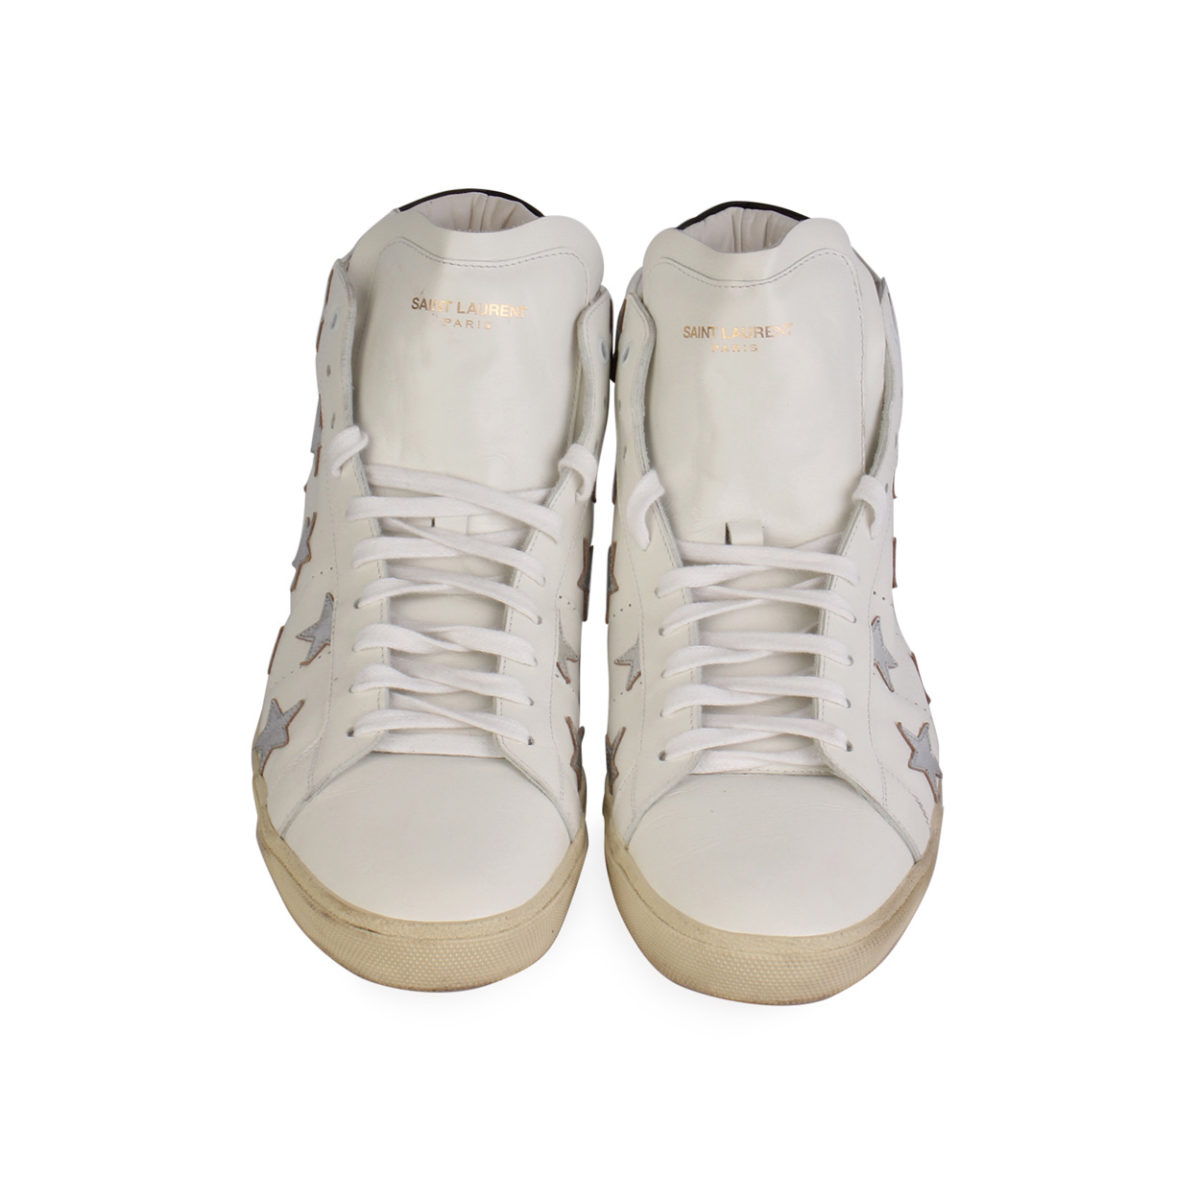 c2bad7990a994 YVES SAINT LAURENT Leather Star Patch High Top Sneakers White – S  ...